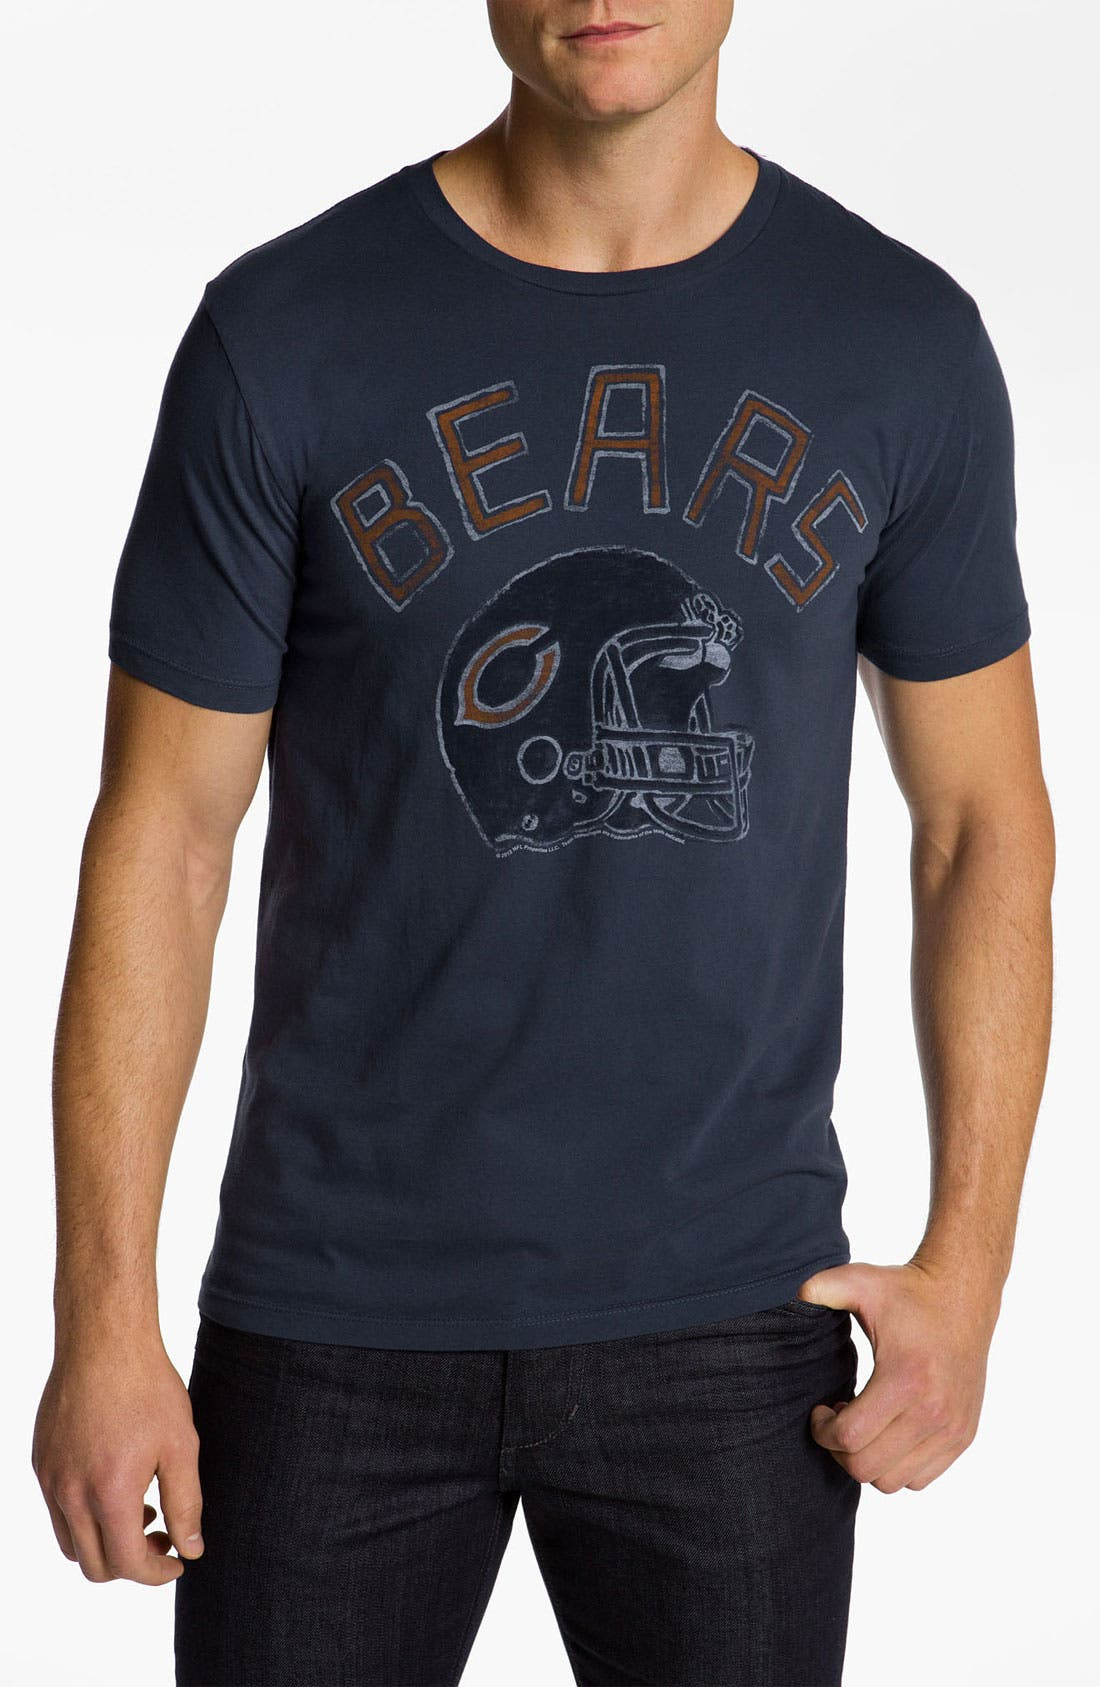 Alternate Image 1 Selected - Junk Food 'Chicago Bears' T-Shirt